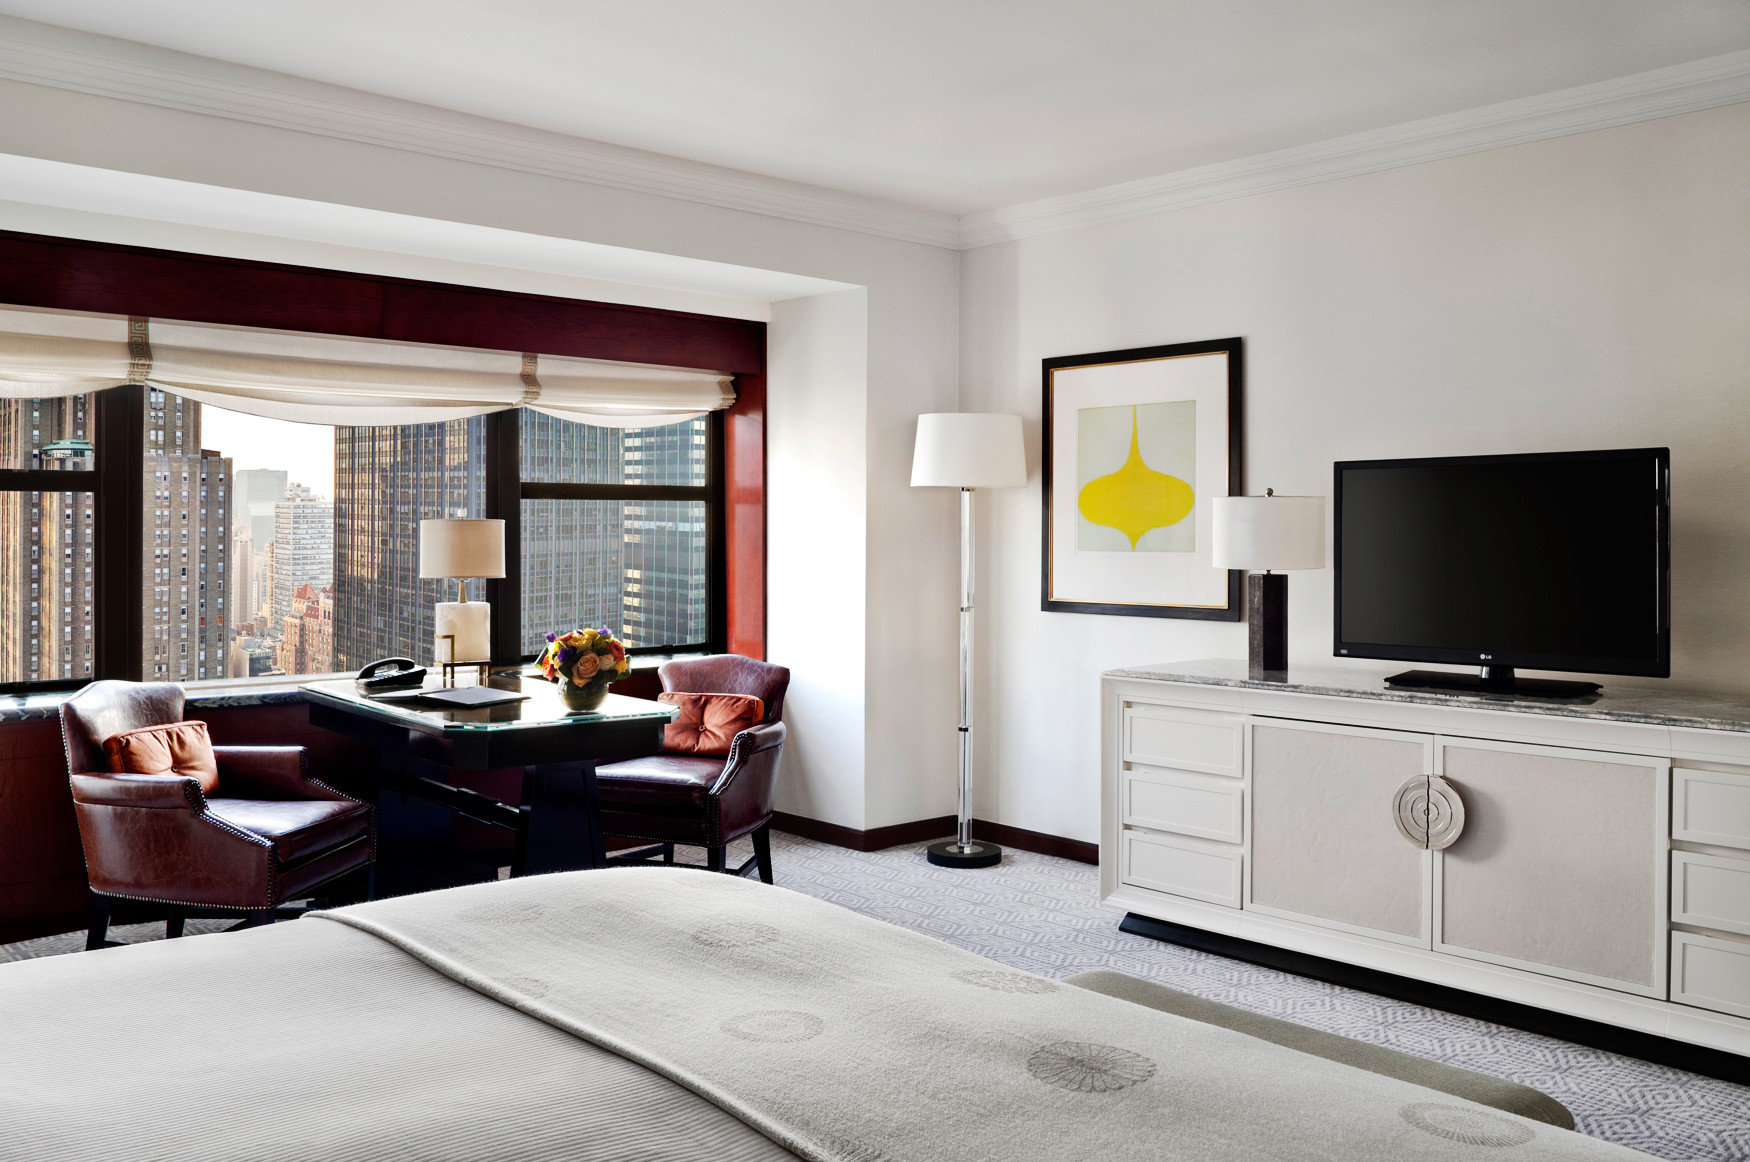 Bedroom City Historic Hotels Modern Trip Ideas property living room home Suite